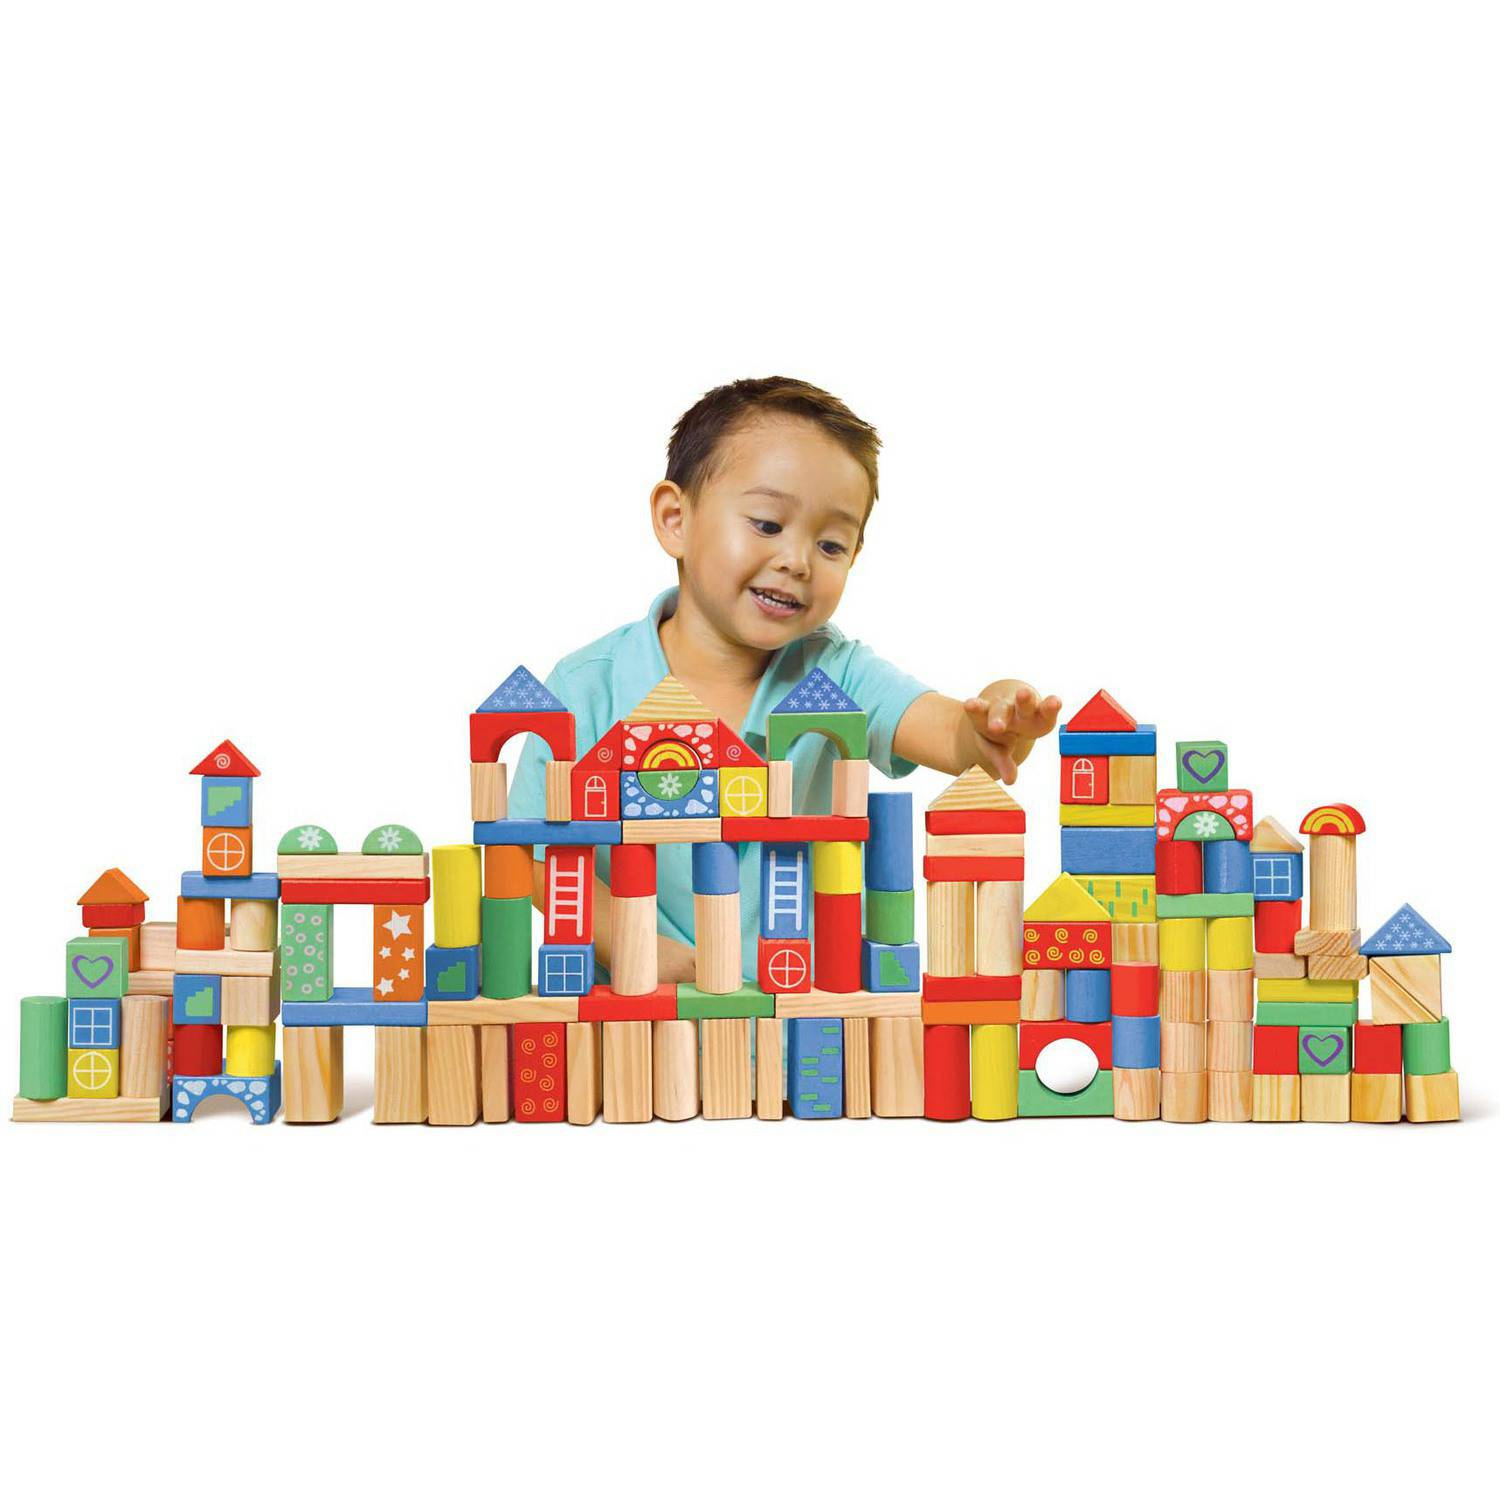 Wooden Toys For Pre School : Piece wooden block set building wood toy shape color